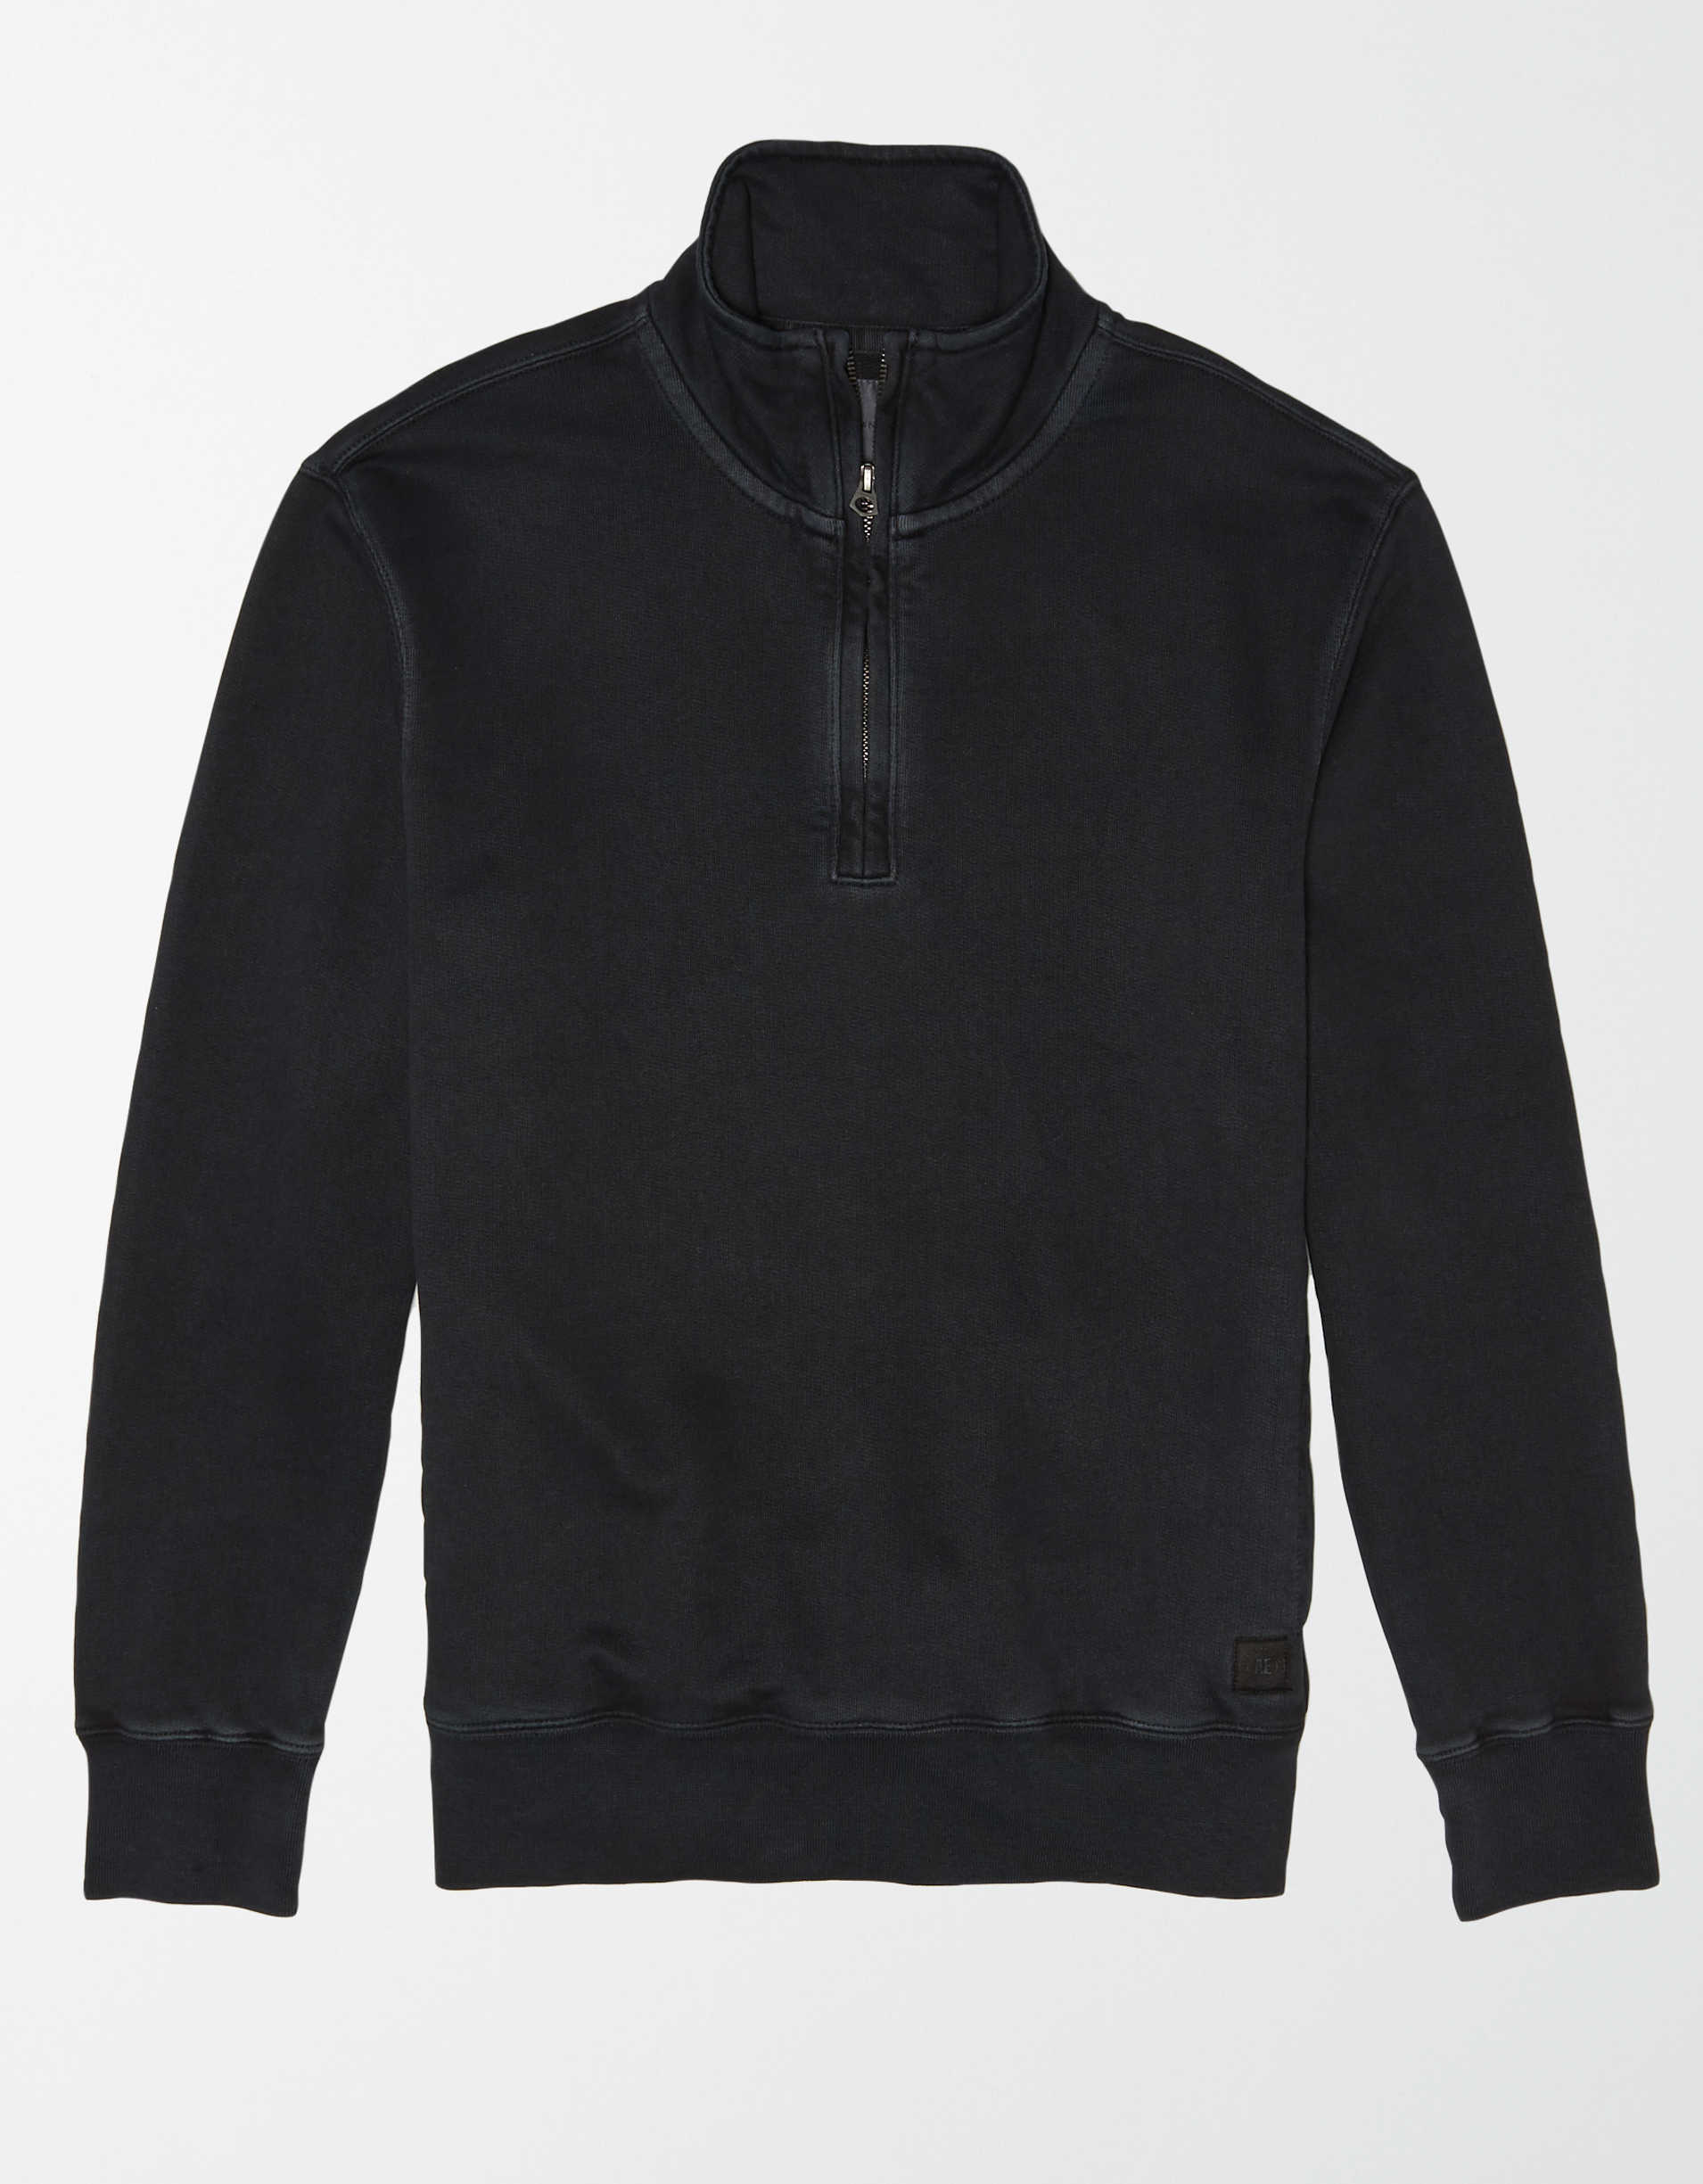 AE Quarter-Zip Sweatshirt